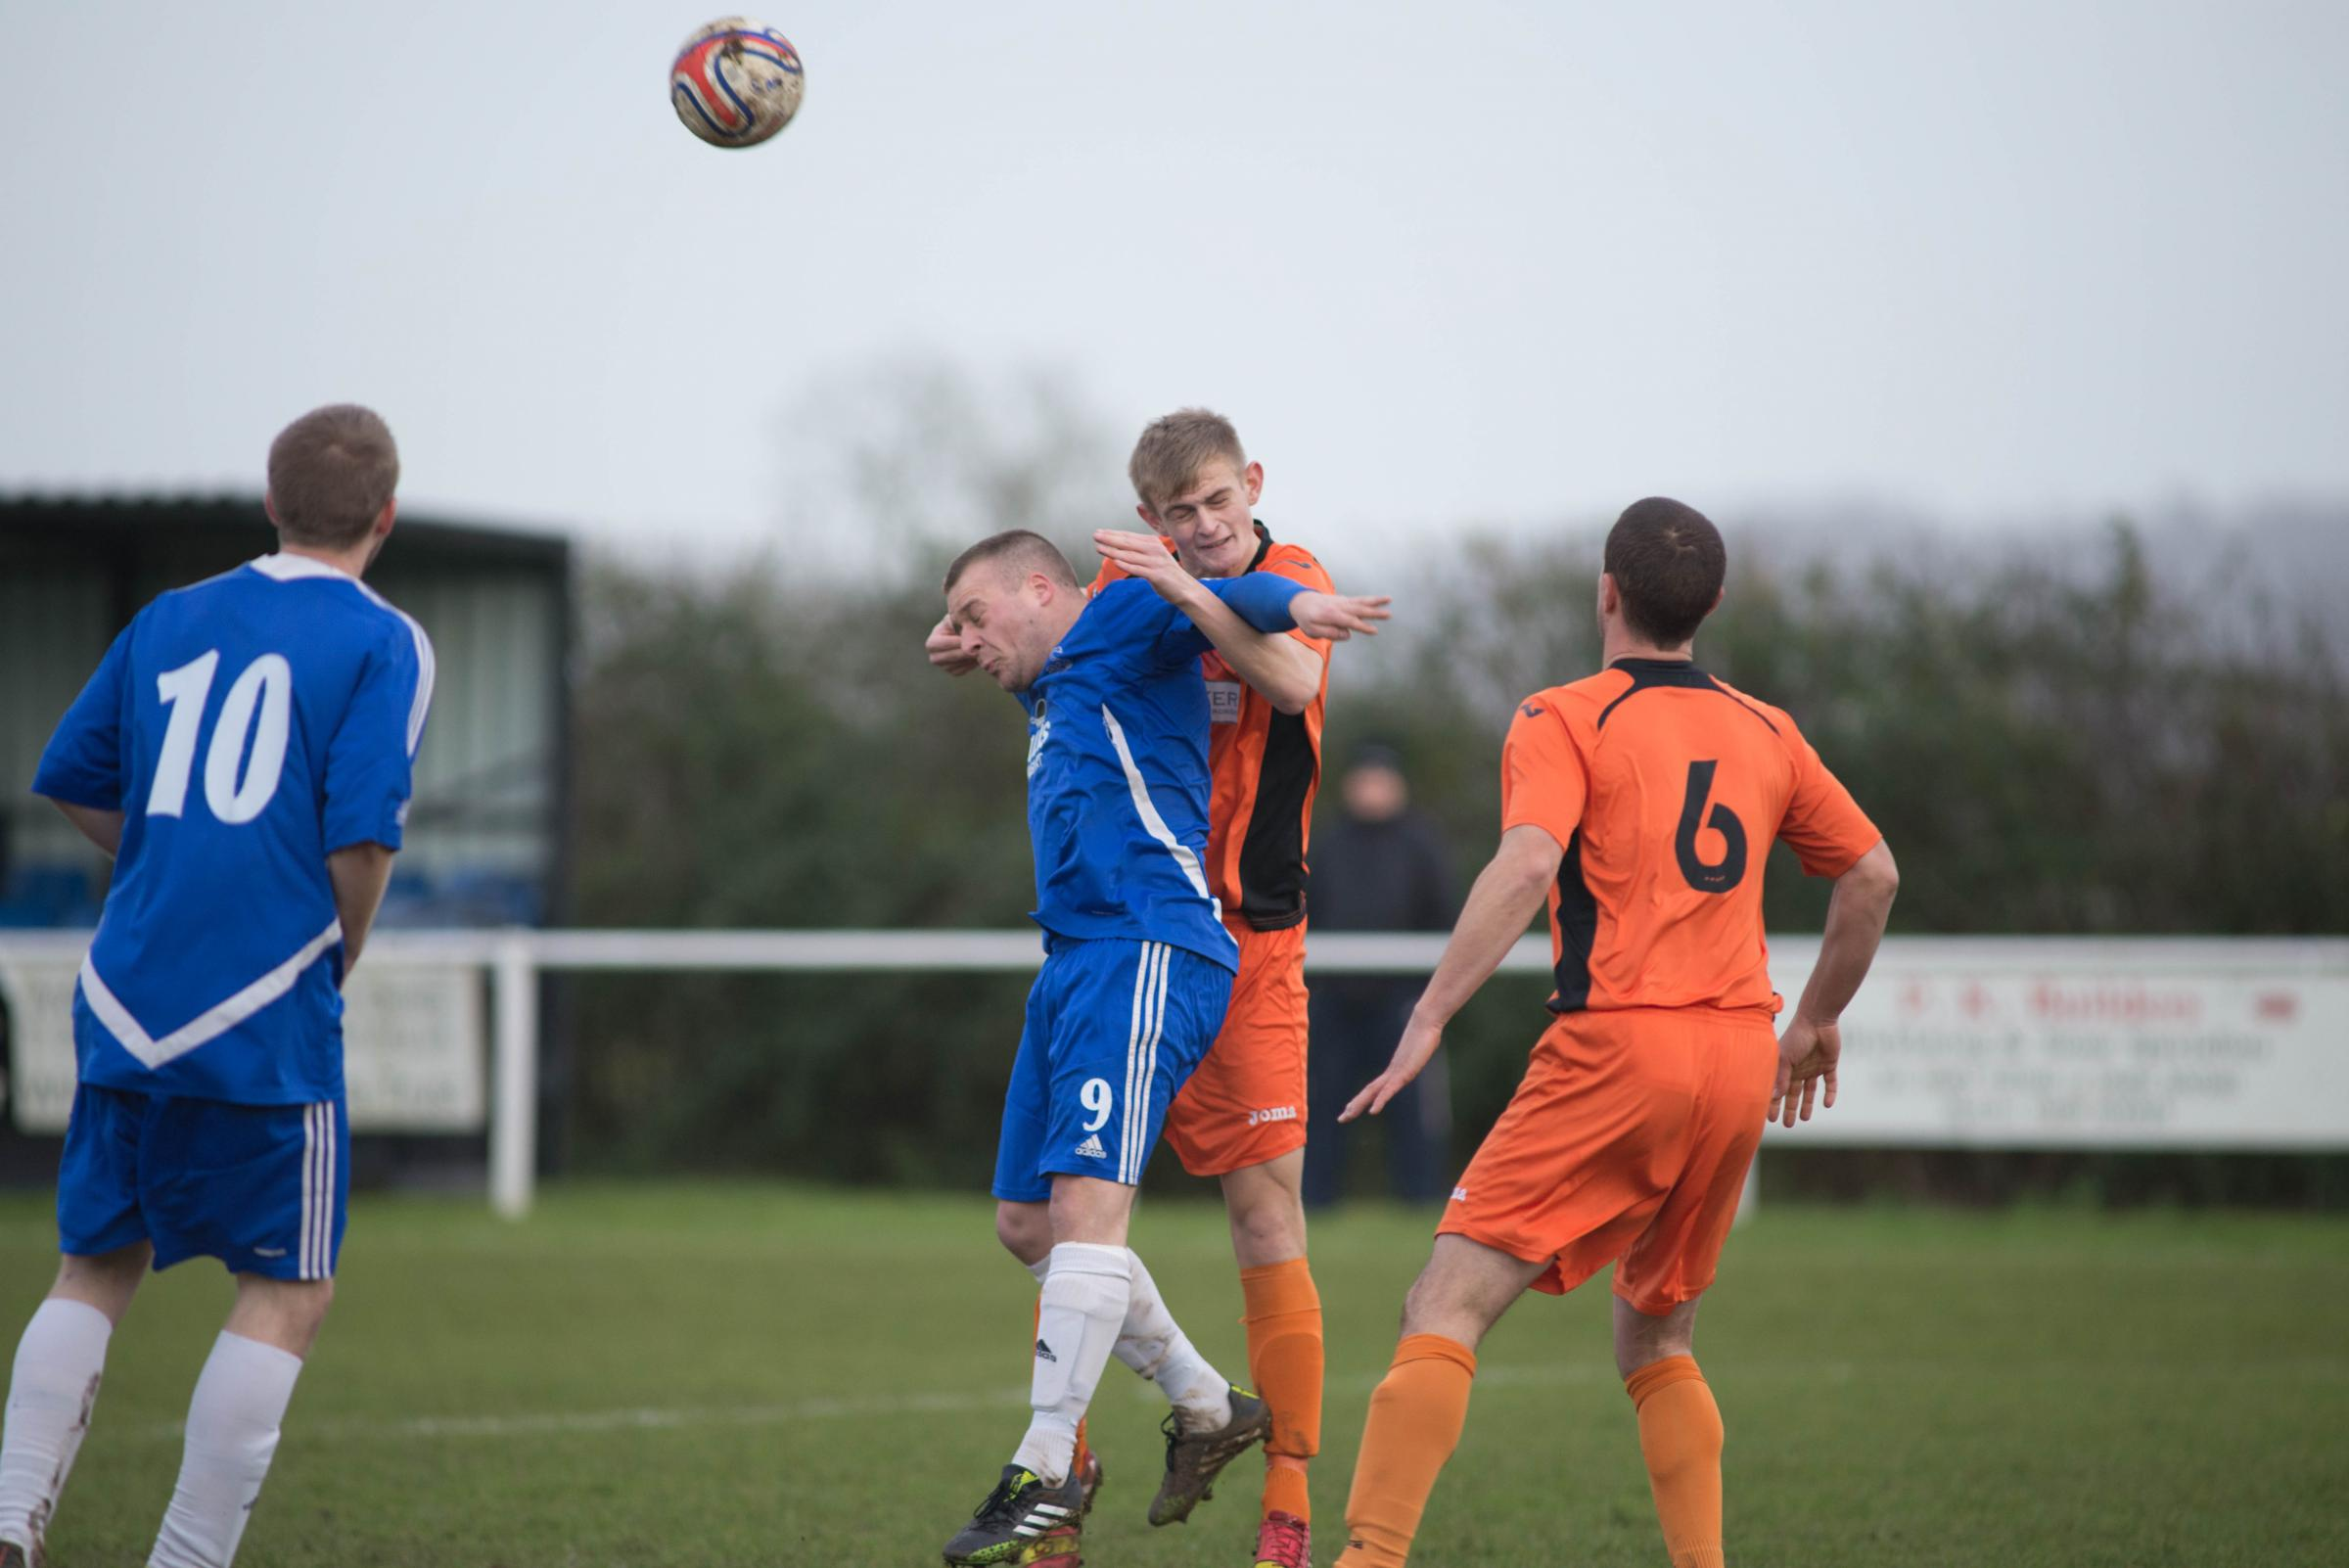 Danny Chandler scored twice for Slimbridge at Street.Picture by Kyle Bradley.